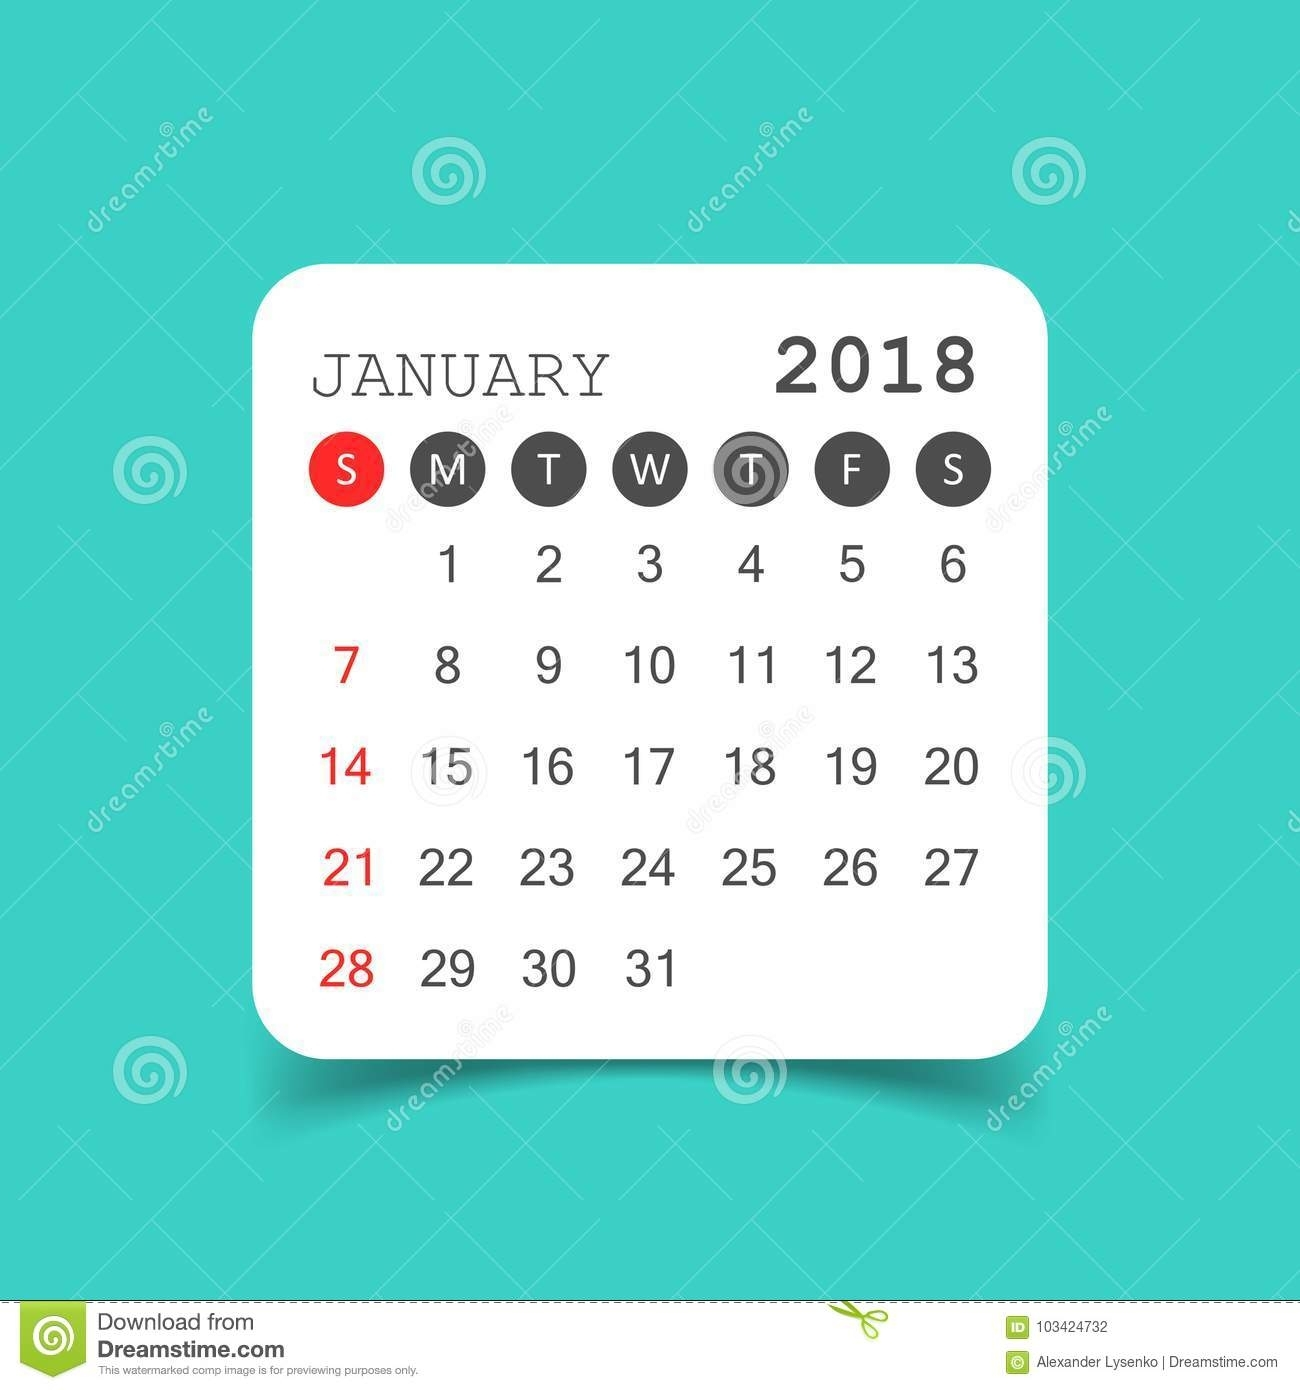 January 2018 Calendar. Calendar Sticker Design Template. Week St for Week By Week Mowing Calendar Templates